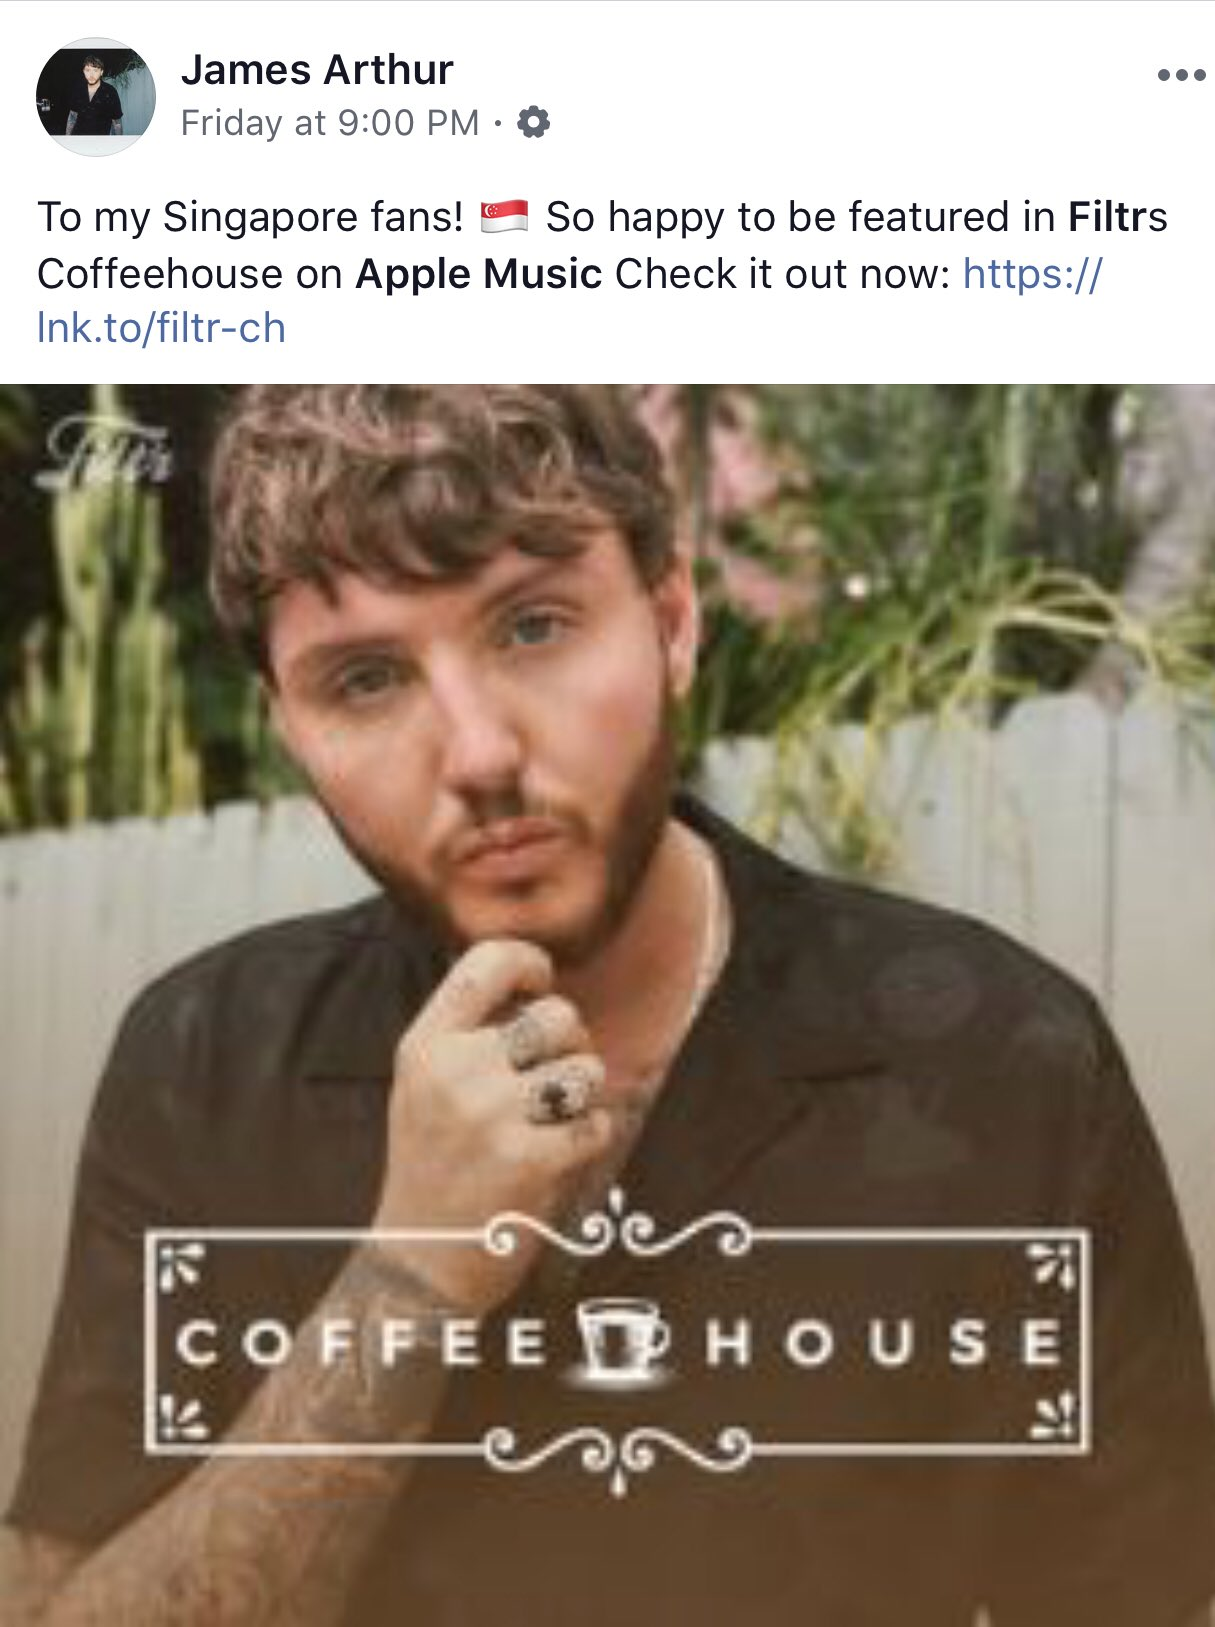 Sony Music Singapore On Twitter @Jamesarthur23 Showing Us Some With